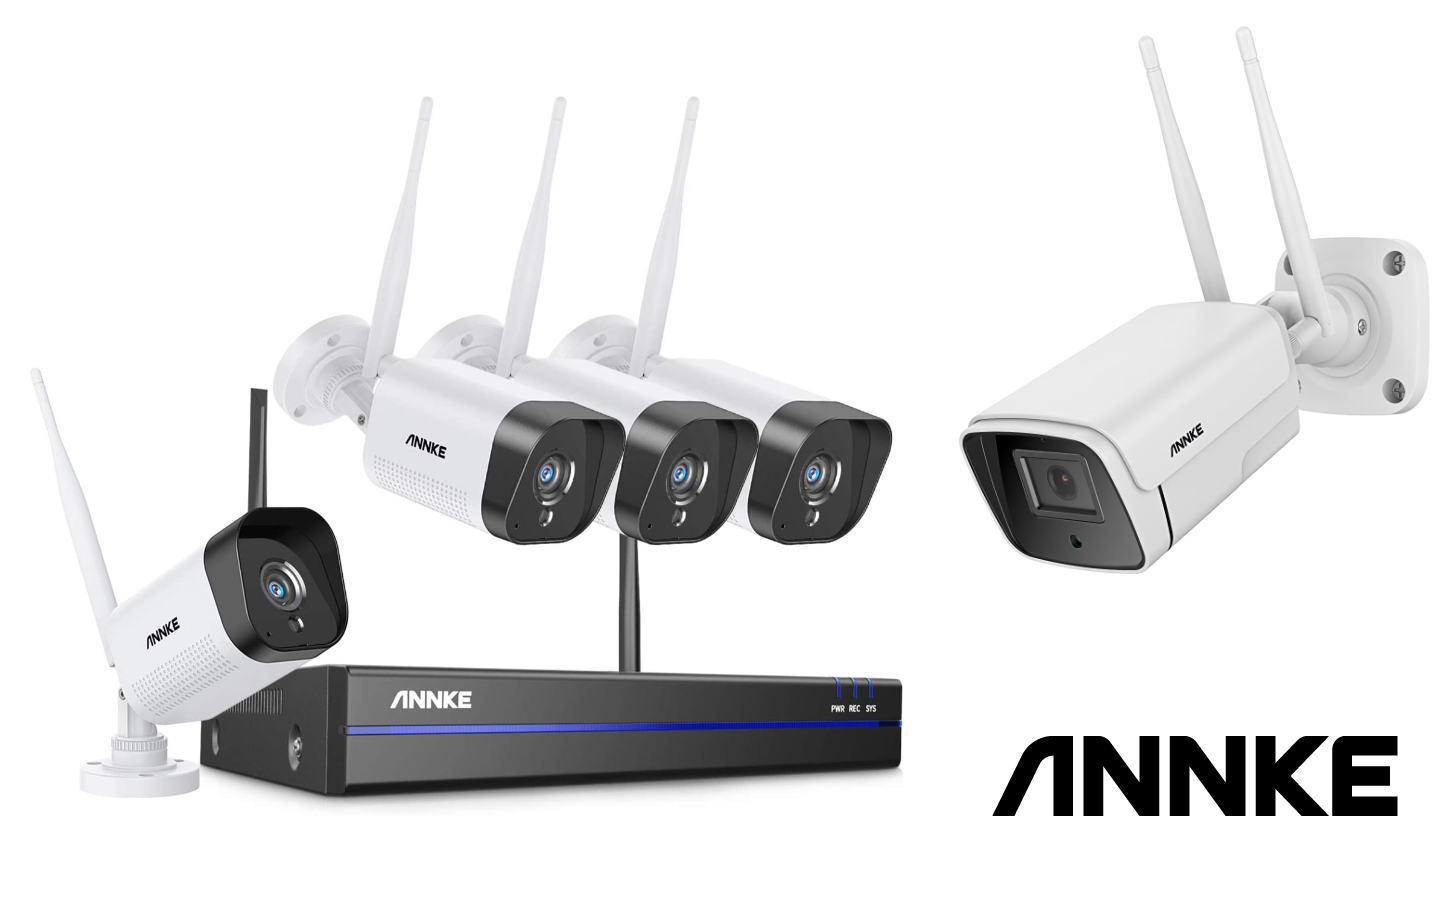 Giveaway: Win an ANNKE W300 security camera or WS200 camera system (US, UK)